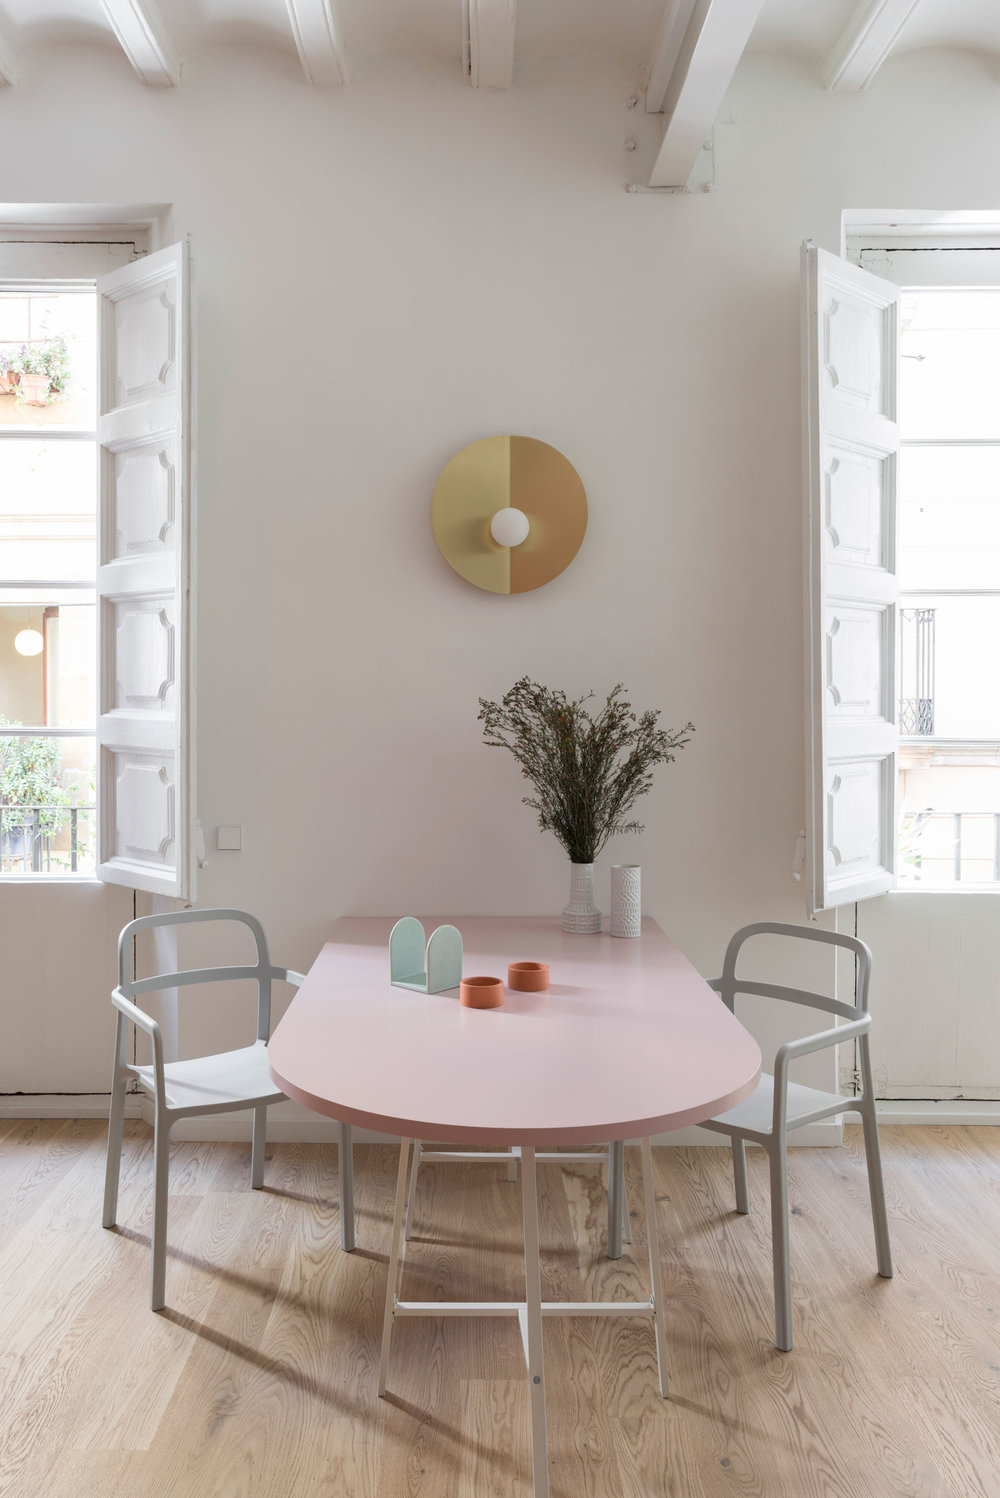 Between the two big windows‭, ‬the golden disc of a Fold Lamp presides over the dining area‭. ‬Designed by CaSA expressly for this project‭, ‬the light is produced by Barcelona brand Metalware‭.‬  Below it‭, ‬a wide table lacquered in pink‭, ‬is flanked by Ypperlig chairs by HAY for IKEA‭.‬